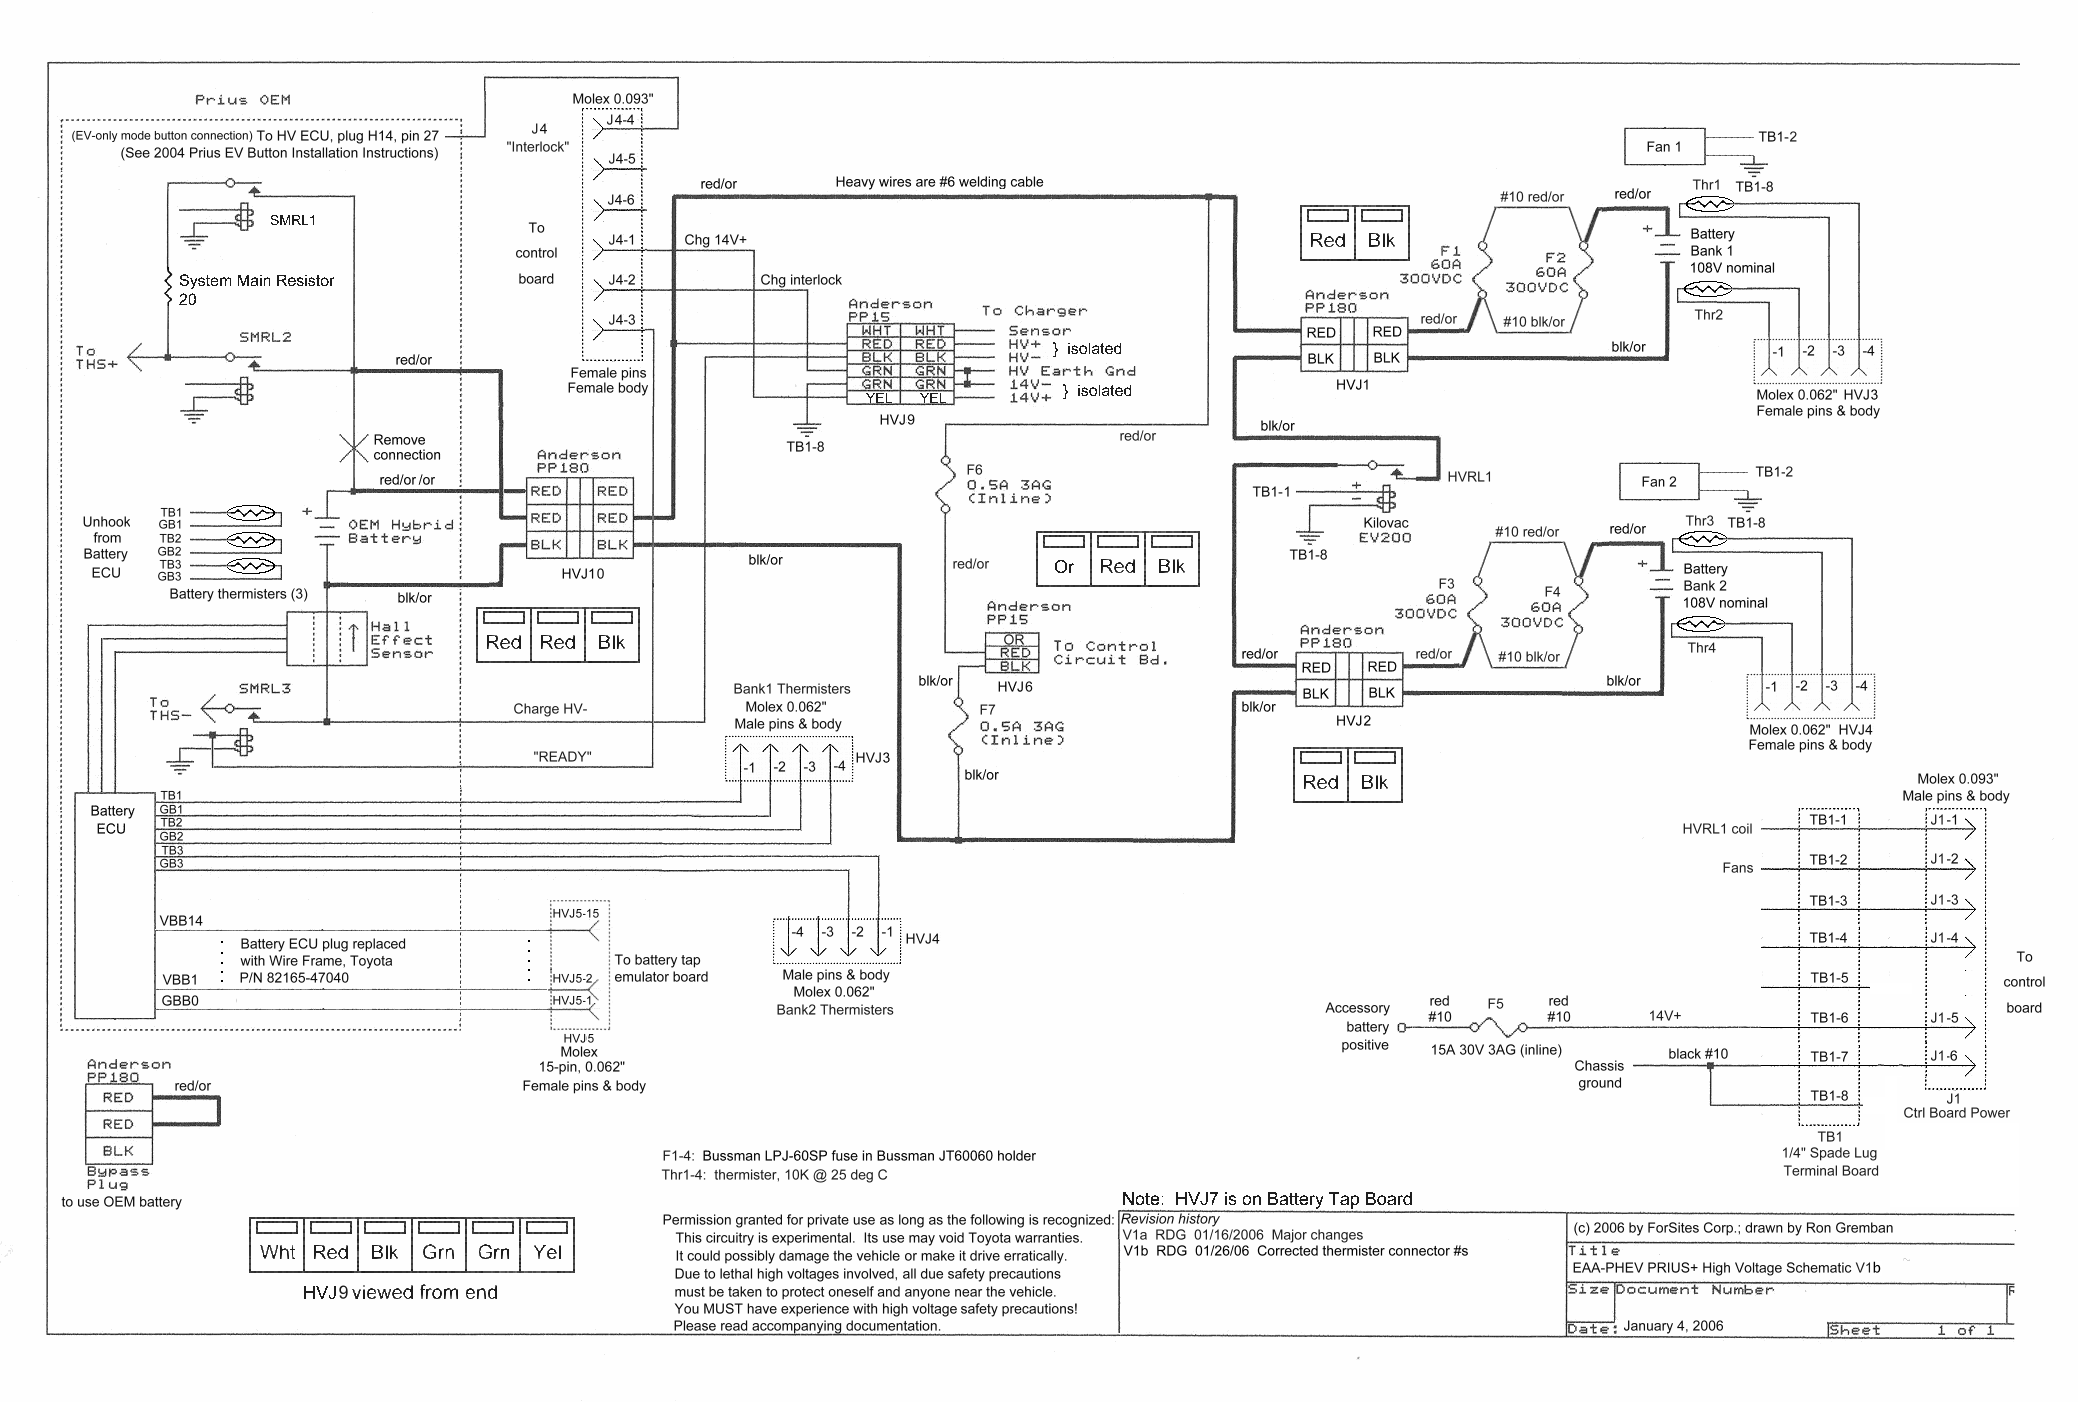 2006 Toyota Prius Electrical Wiring Diagram Ford Fe Engine Cooling Diagram Impalafuse Wiringdol Jeanjaures37 Fr